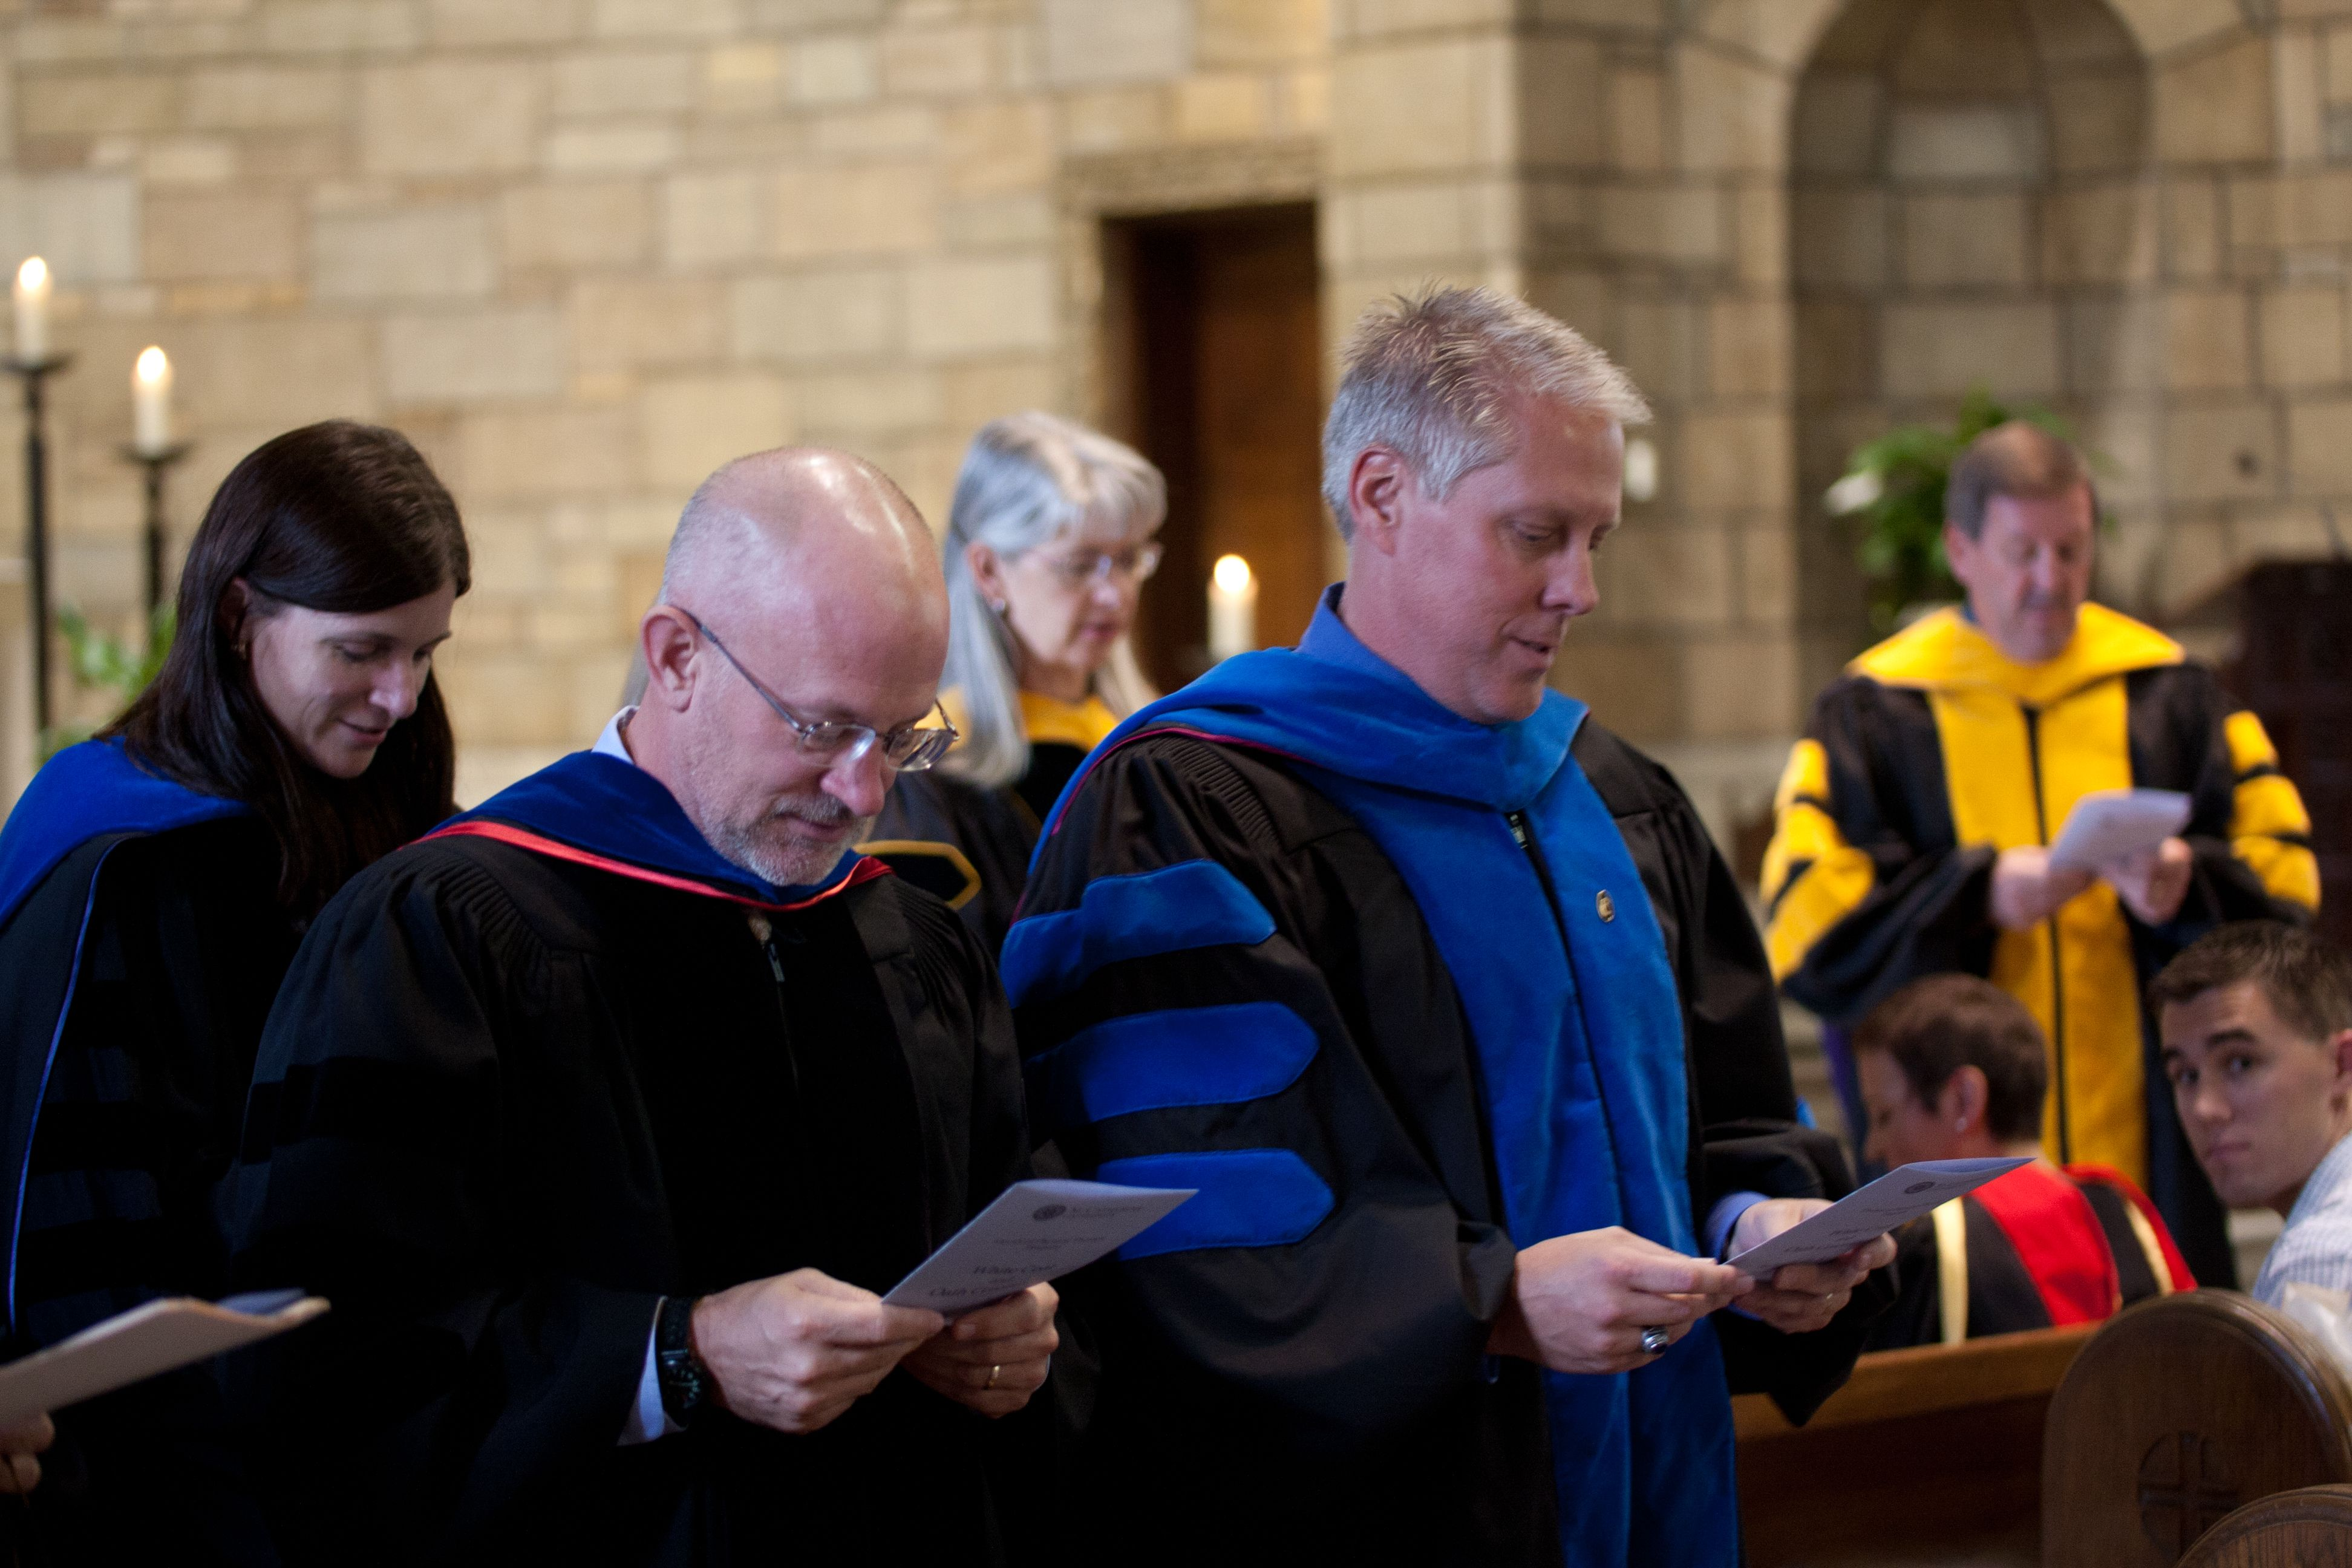 Doctorate of physical therapy program - Students In The Doctor Of Physical Therapy Program Are Celebrated By Faculty And Guests During A